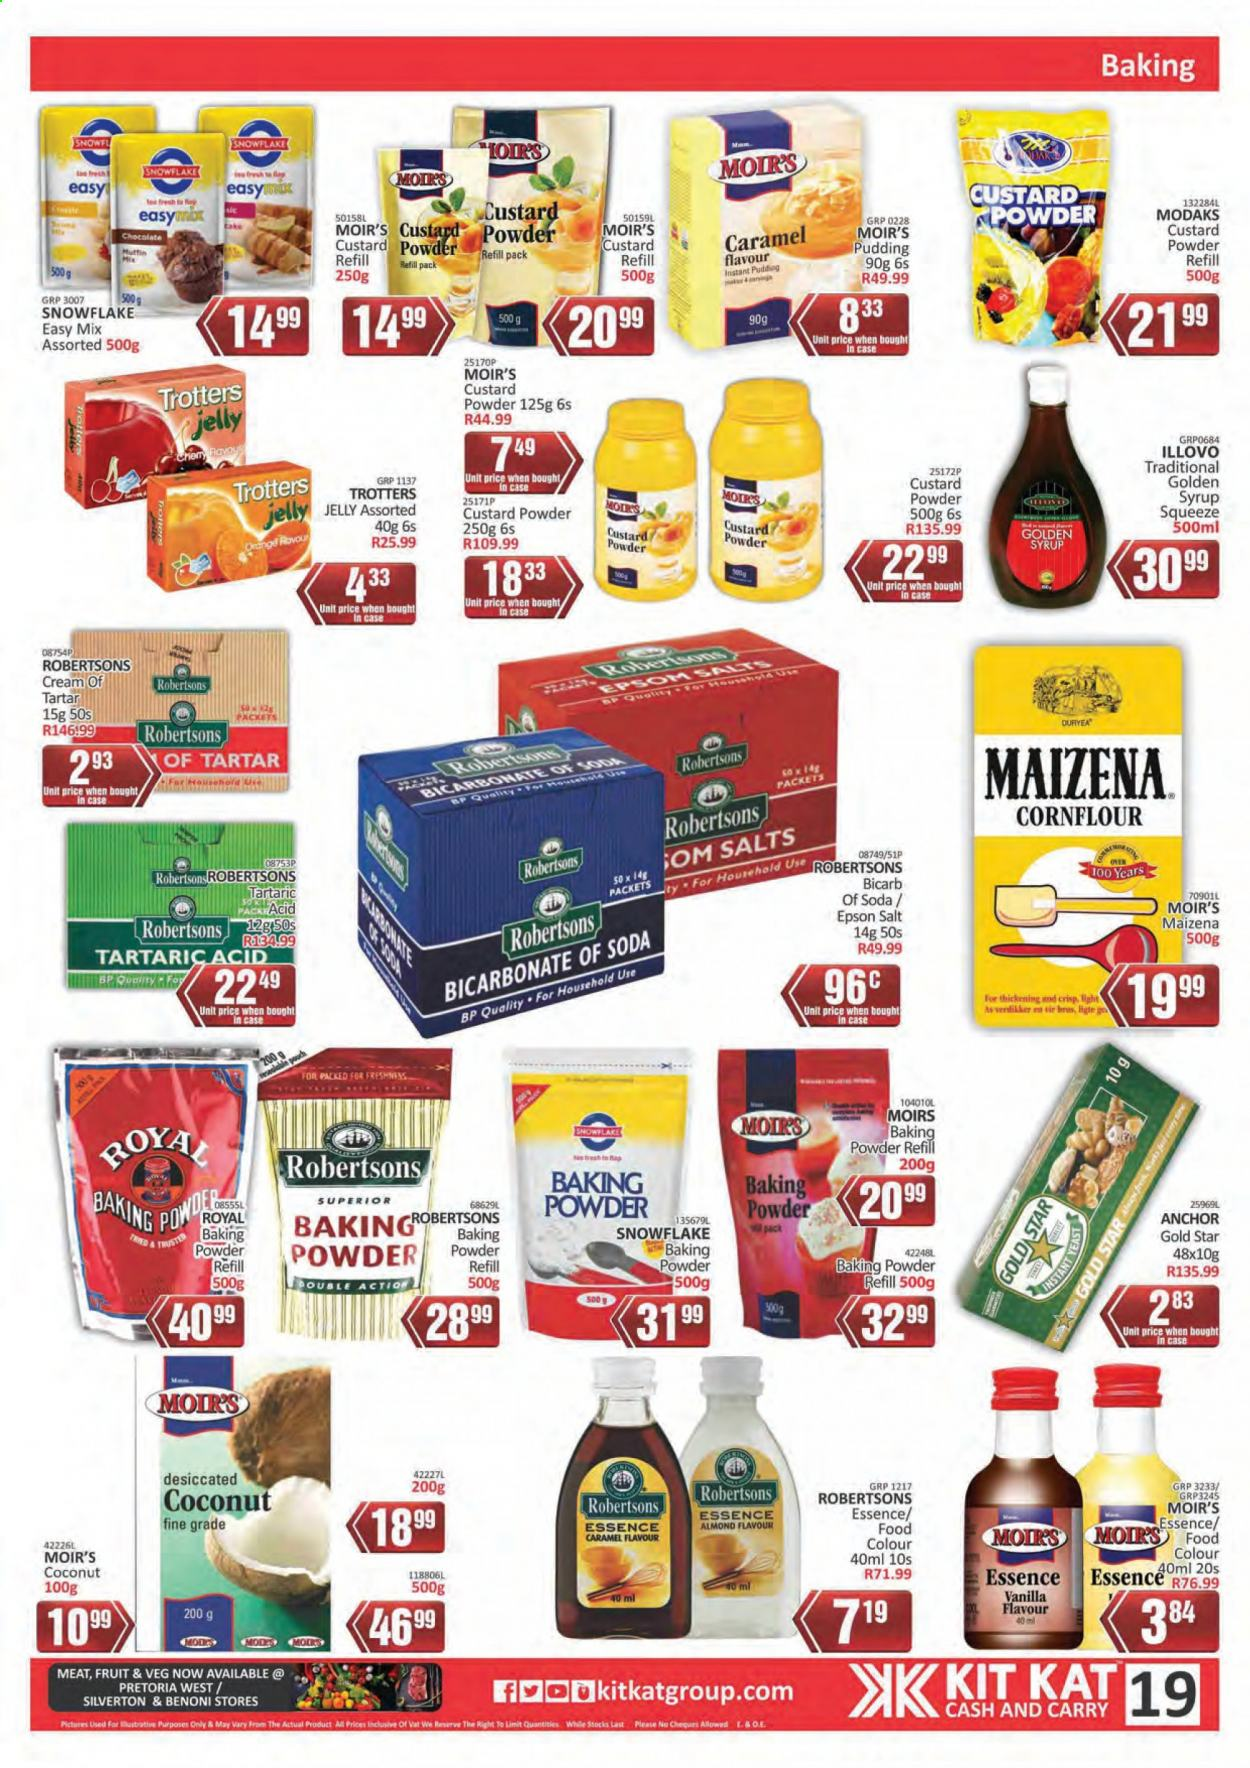 Kit Kat Cash & Carry catalogue  - 02.11.2021 - 05.12.2021. Page 19.